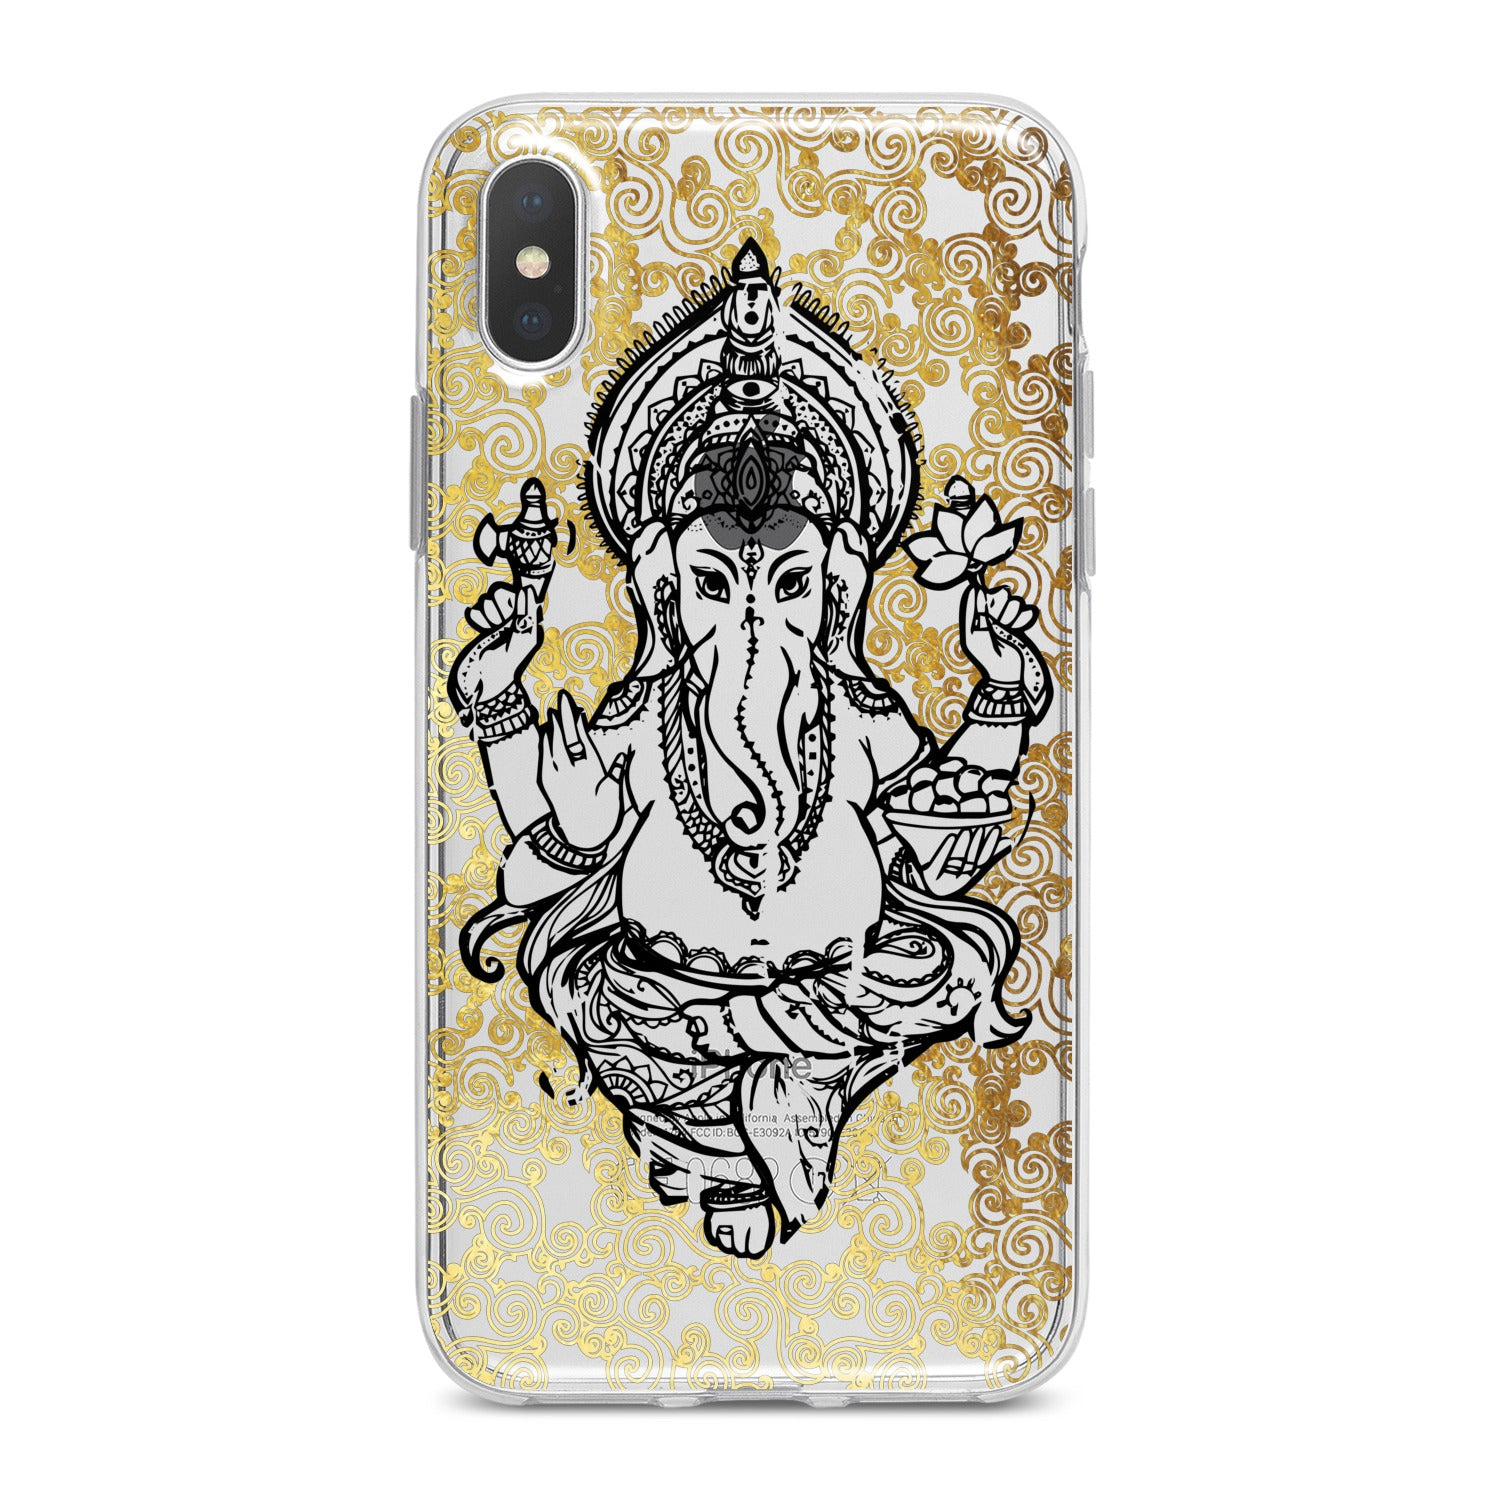 Lex Altern Ganesha Print Phone Case for your iPhone & Android phone.